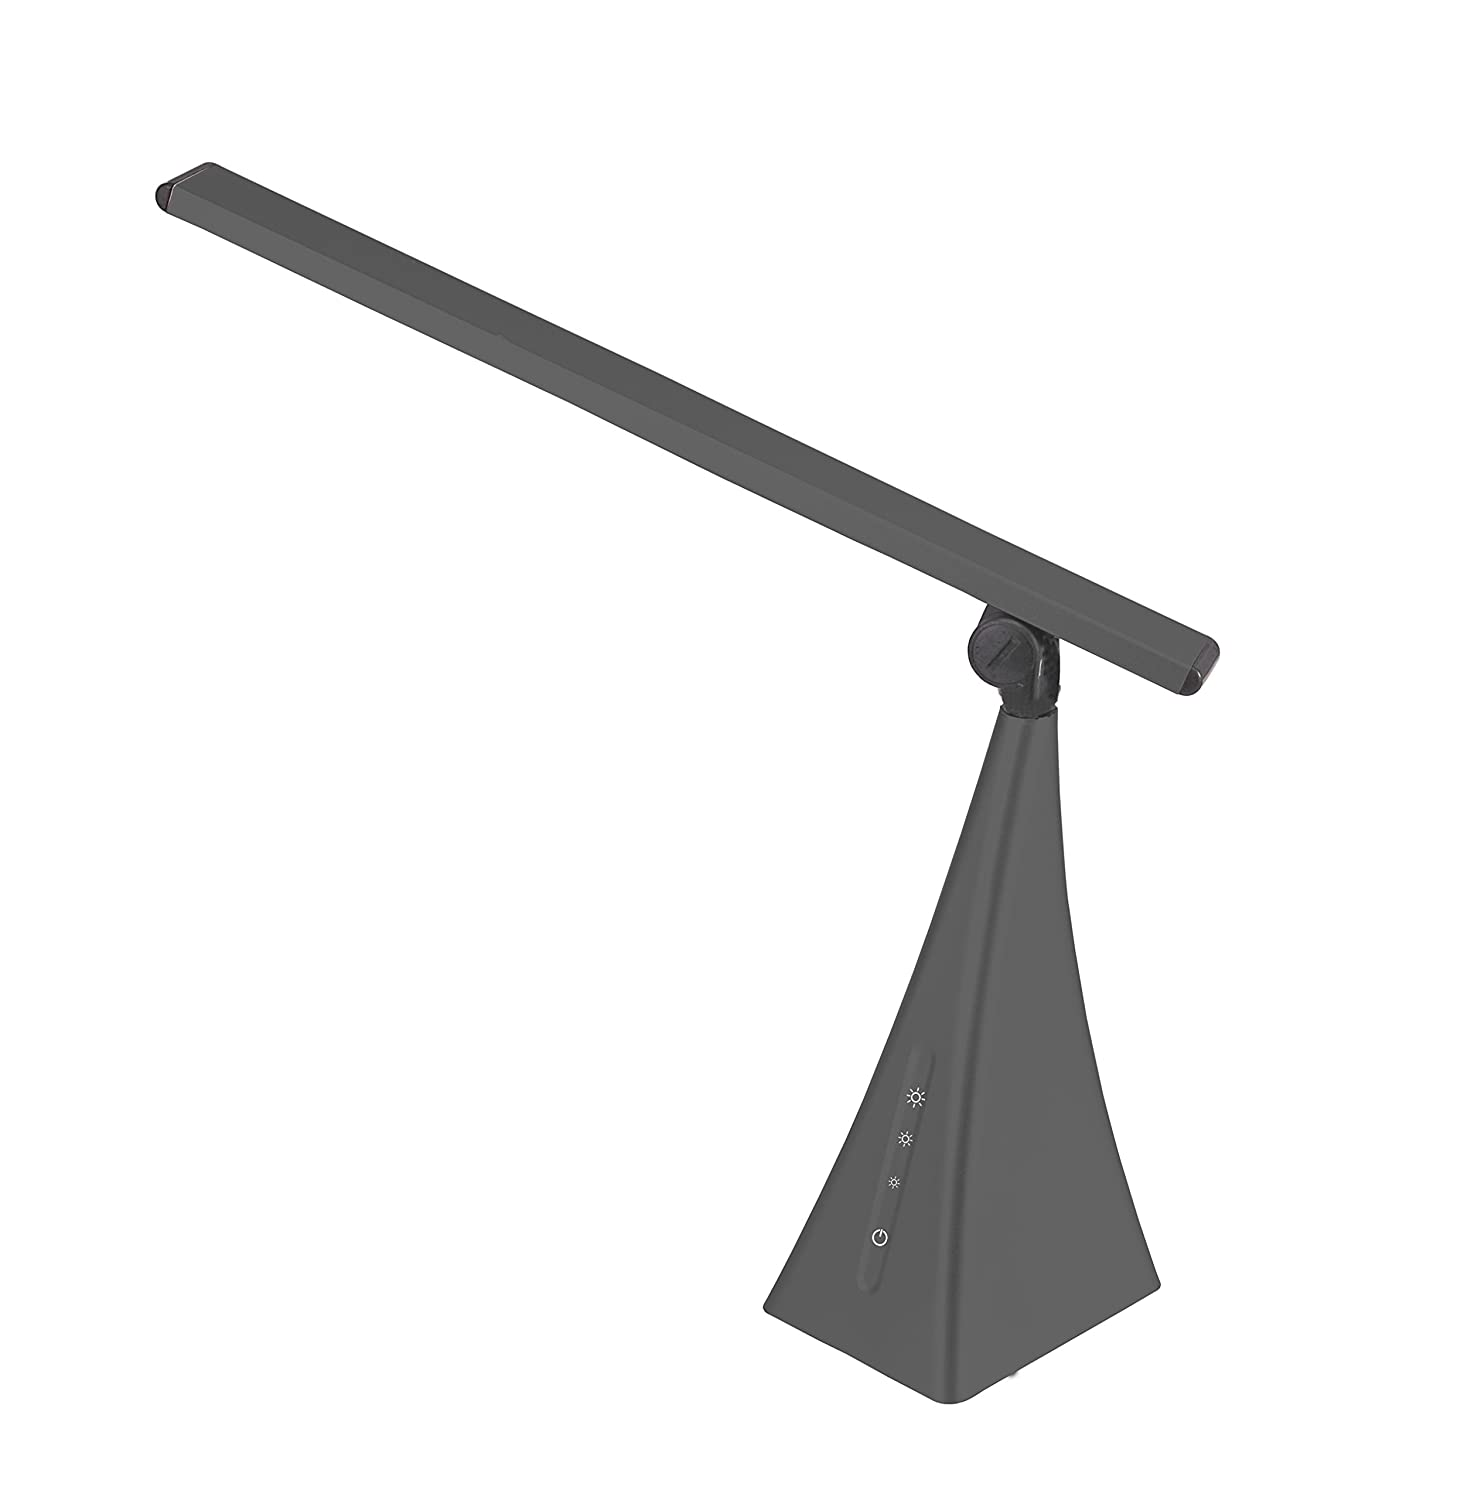 V-LIGHT LED Energy-Efficient Pyramid Style Desk Lamp with USB Charging Port and 3-Level Touch Dimming Switch, Charcoal Gray VSLD363GN